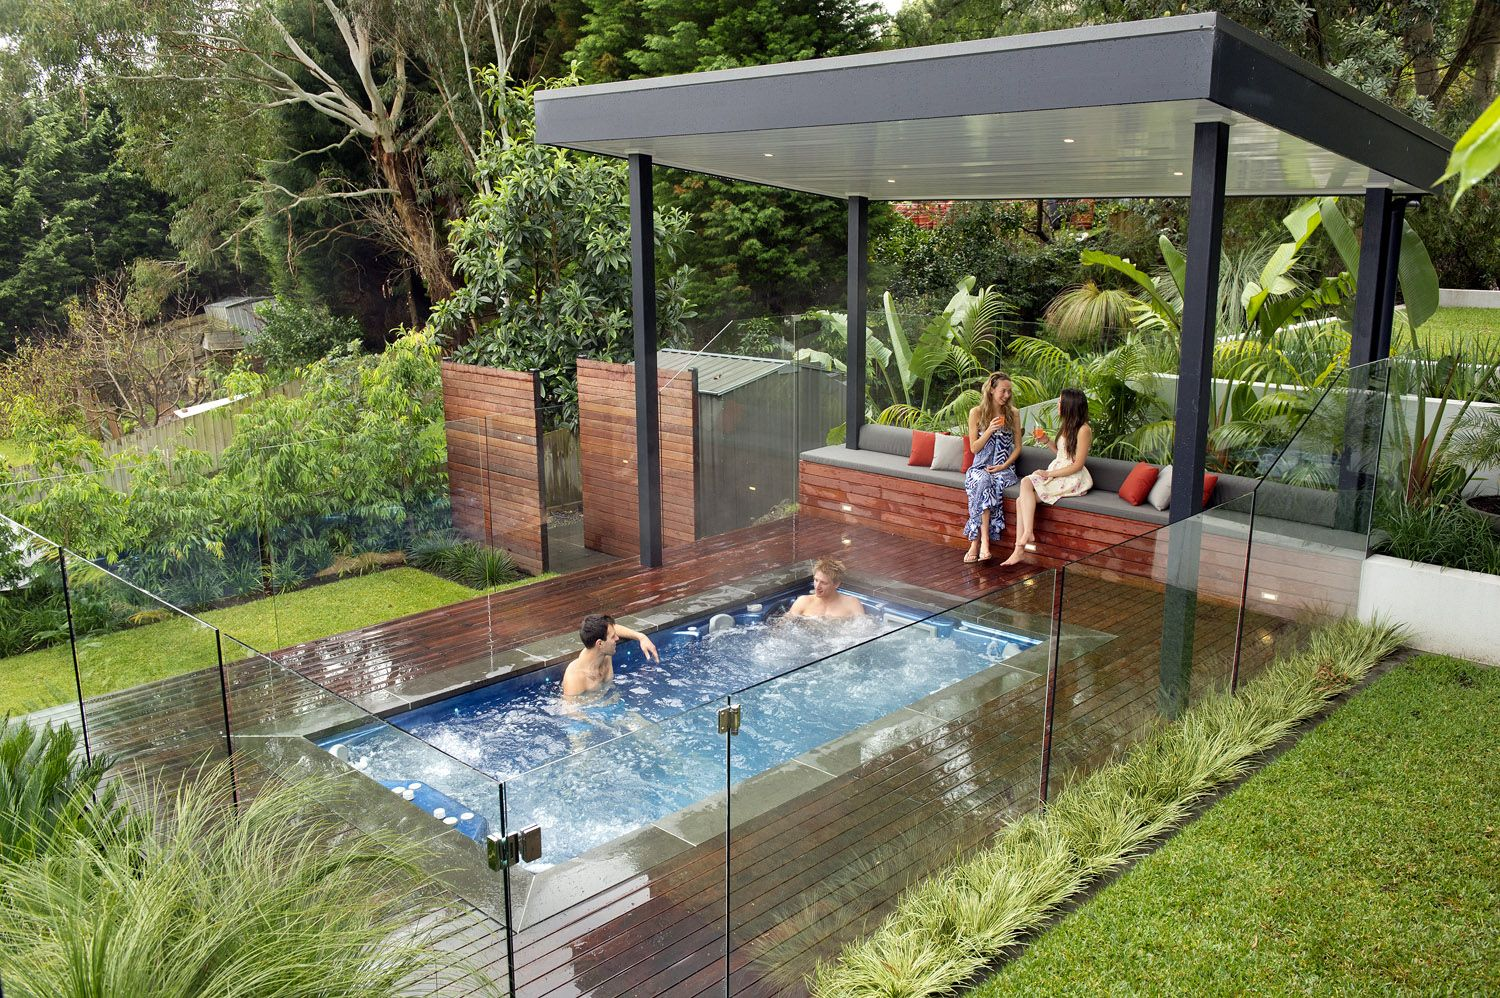 Modern nice design of the outdoor spa landscaping ideas for Pool and garden design